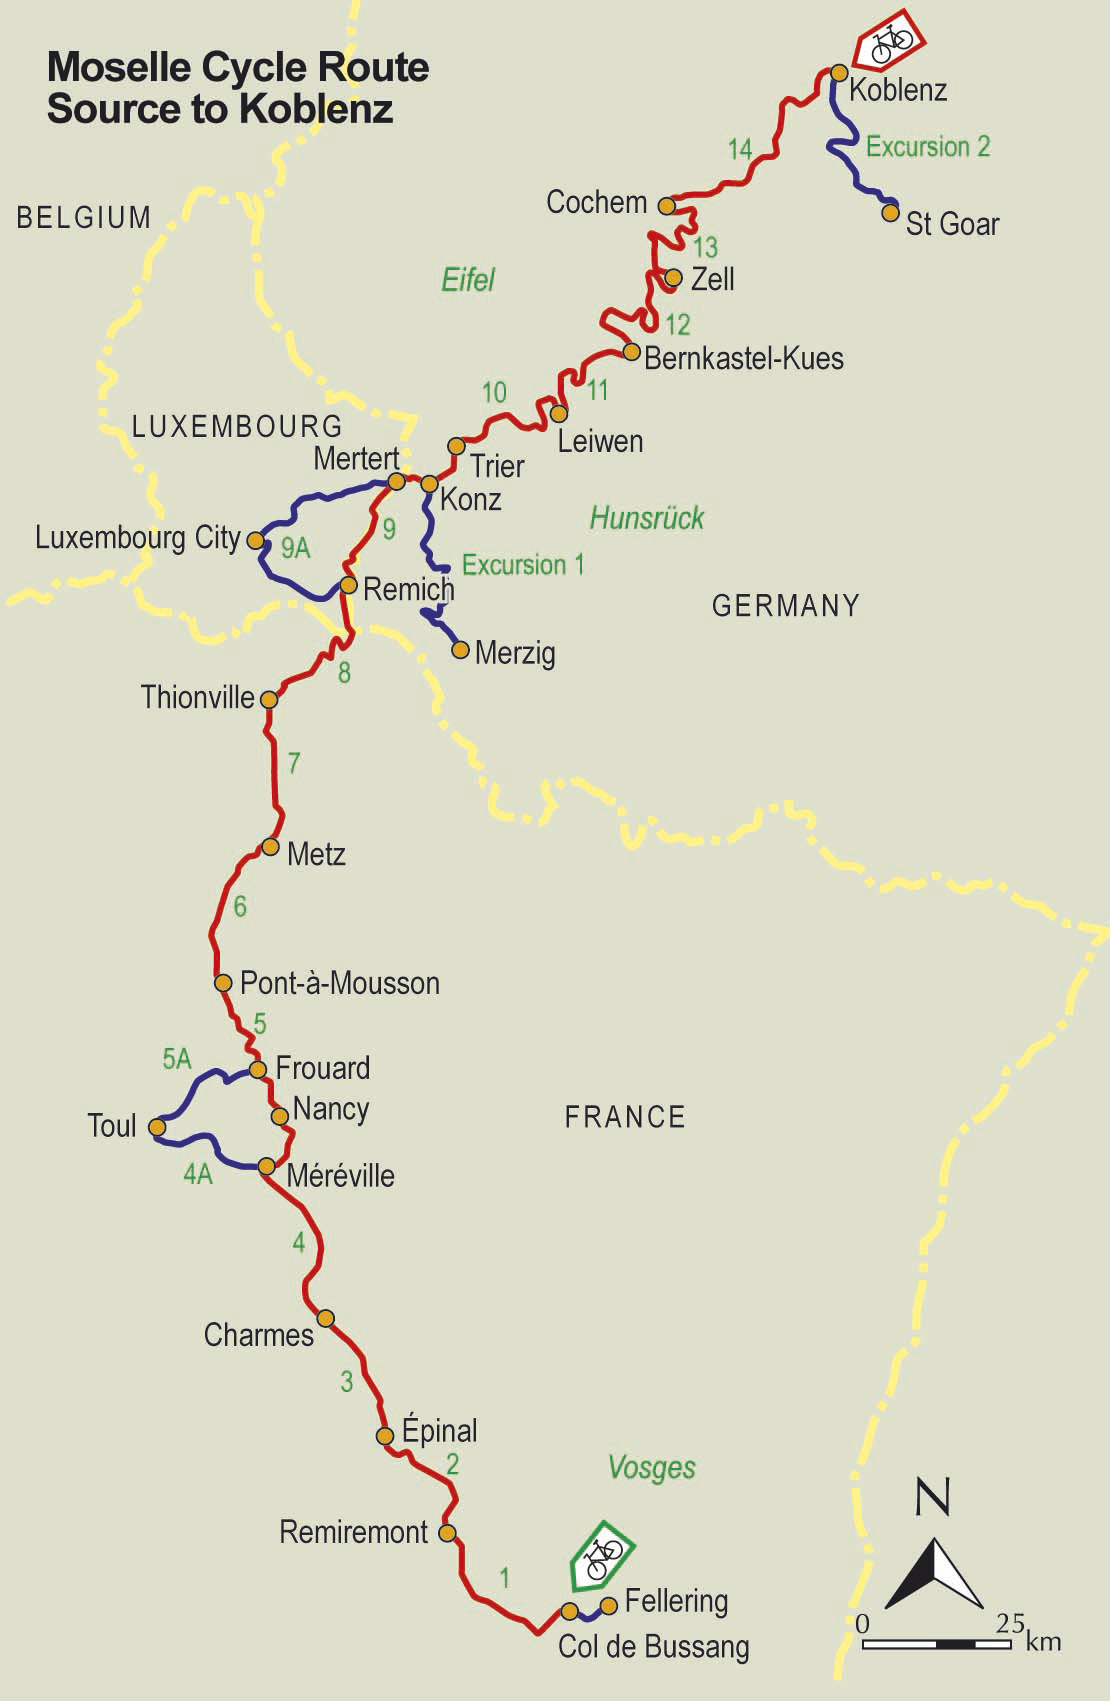 Moselle bike Route